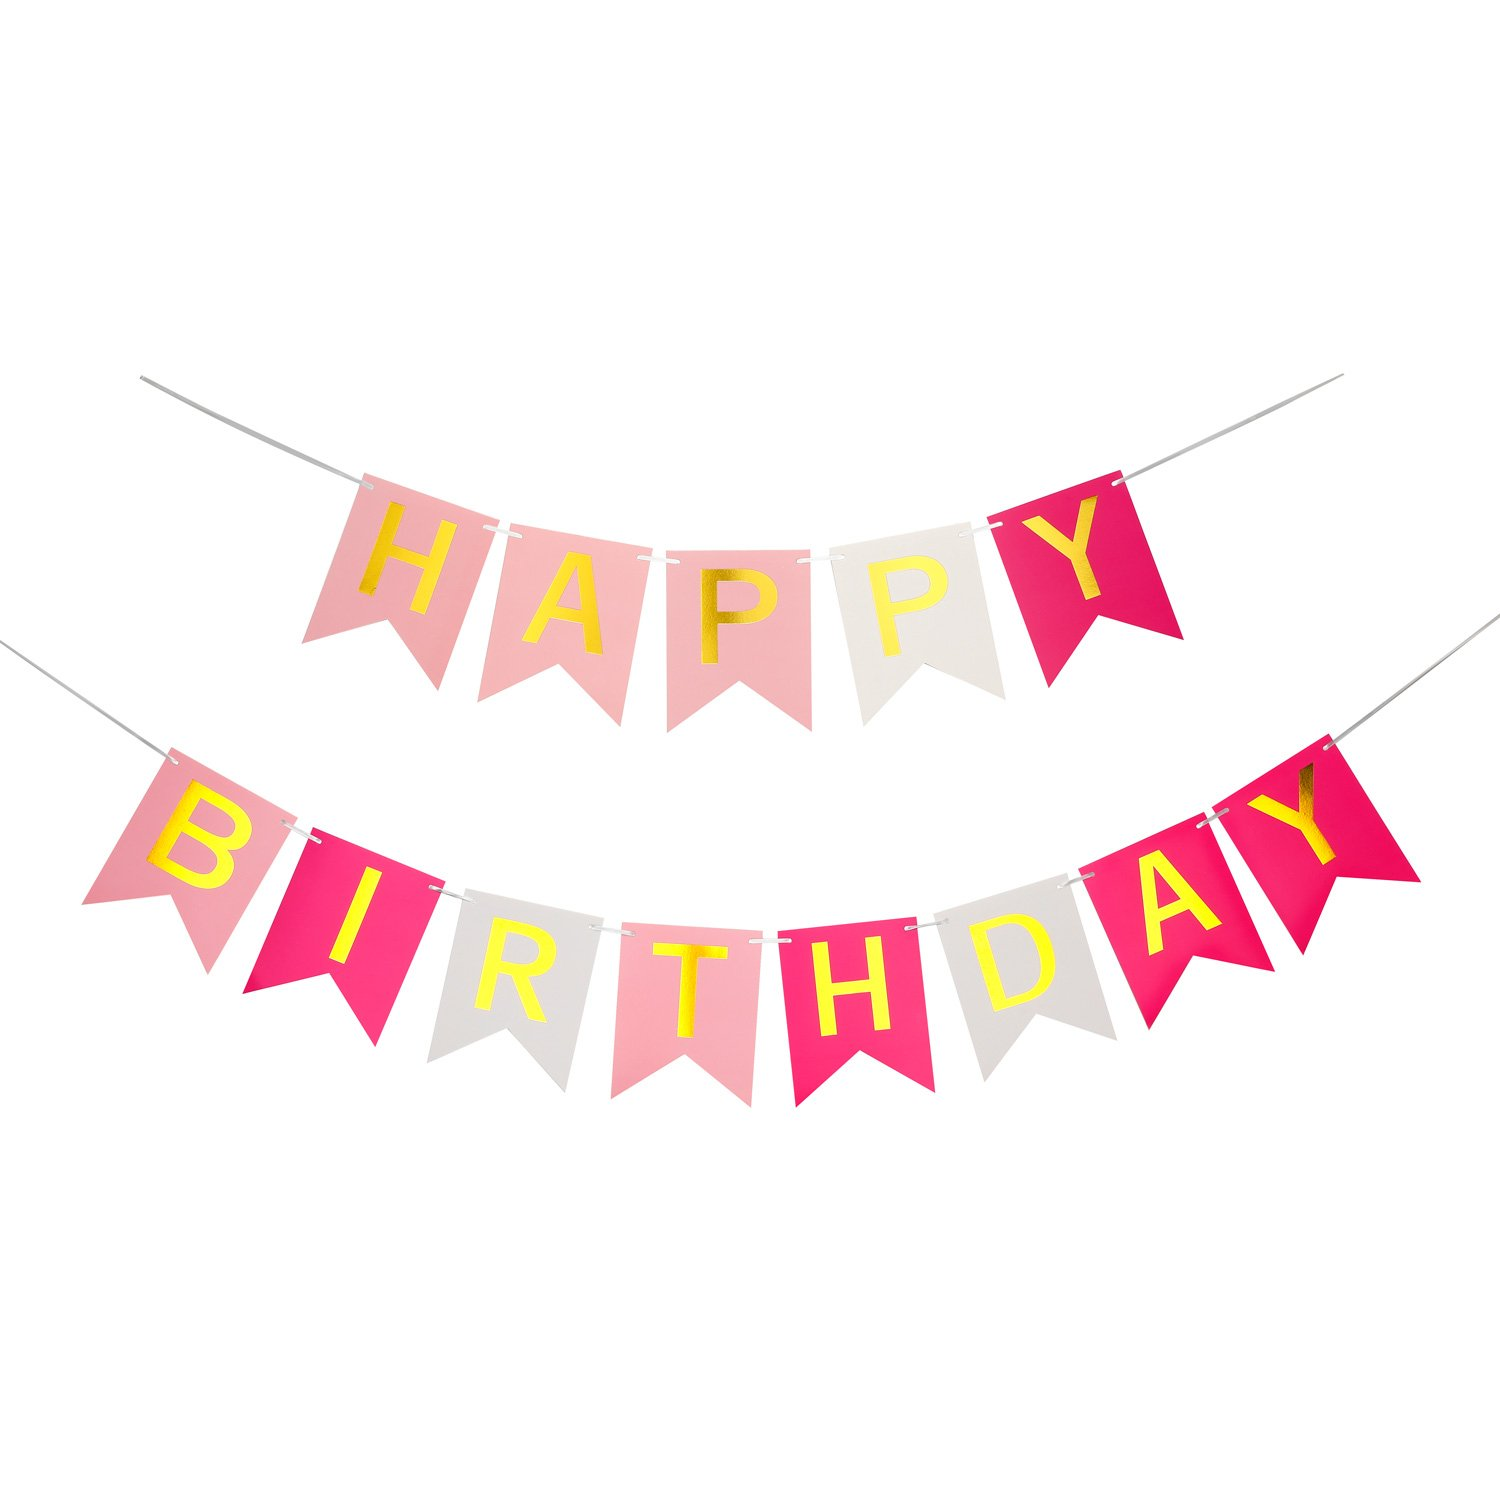 Happy Birthday Banner, Party Decorations, Versatile, Beautiful, Swallowtail Bunting Flag Garland, Chic Pink&Rose&Gold)